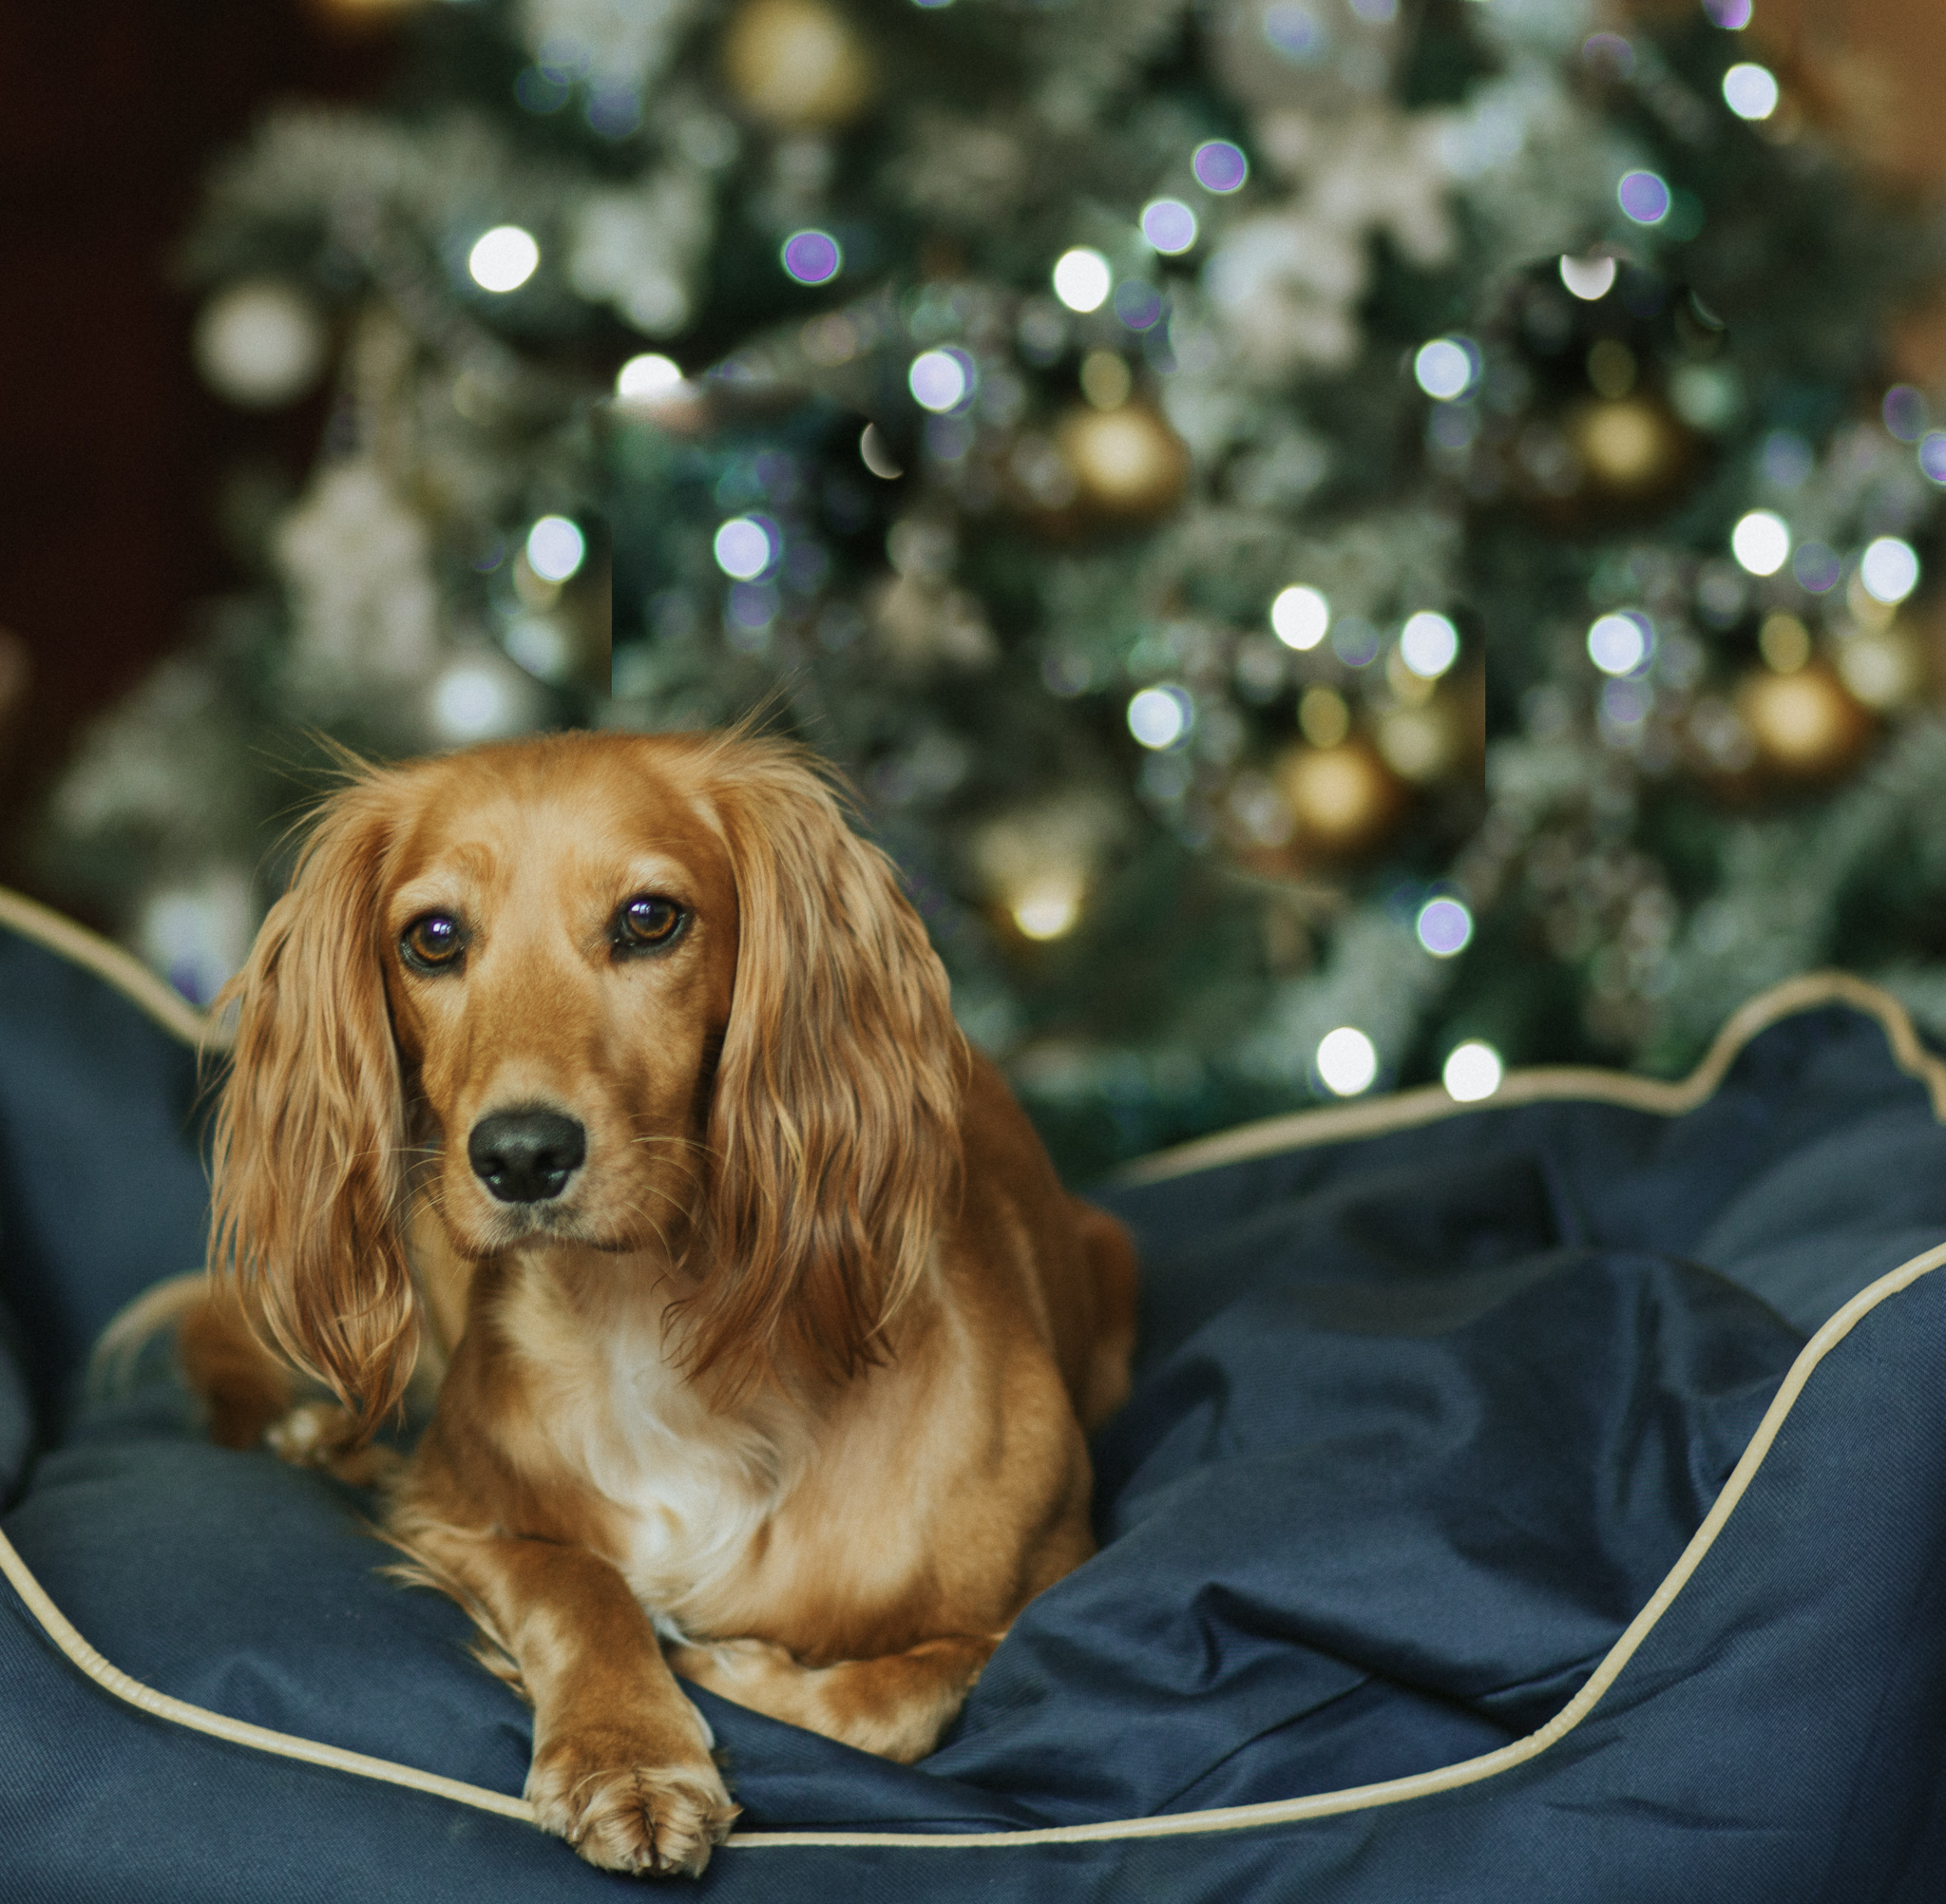 Give your dog the gift of relaxation this Christmas